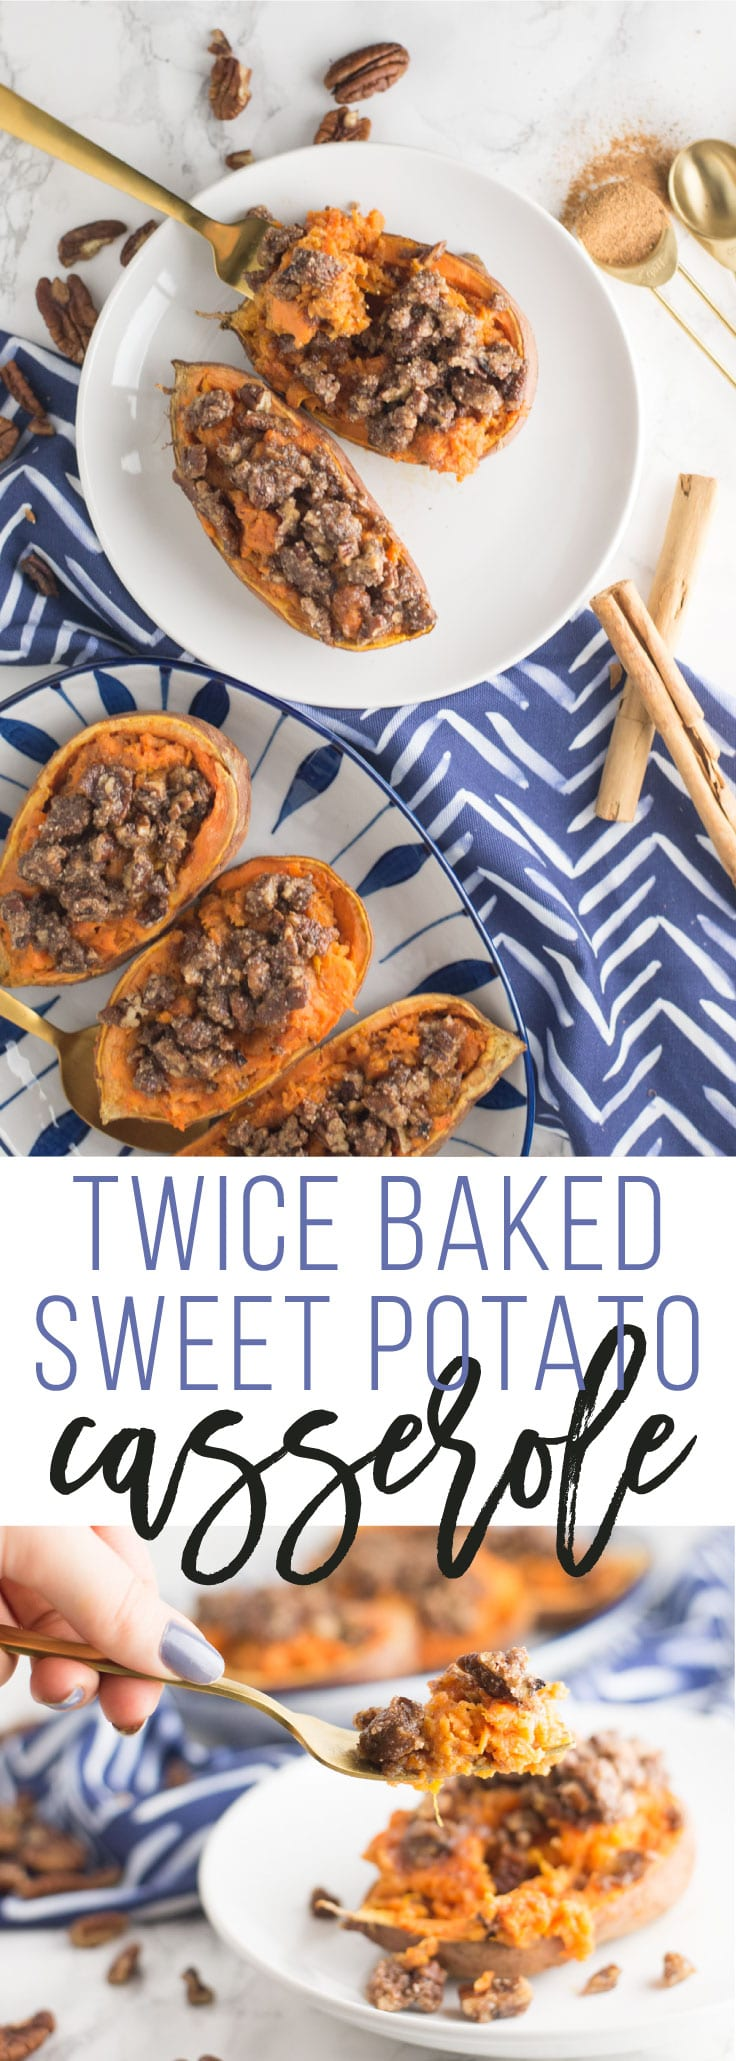 Twice Baked Sweet Potato Casserole -- This indulgent sweet potato casserole recipe is a great side dish for the holidays, or a healthy dessert. Sweet potato mash baked in the skin all topped with a maple pecan crumble, this vegan and gluten free recipe is a crowd pleaser. Made with all delicious whole foods to make your heart and your belly sing! | mindfulavocado